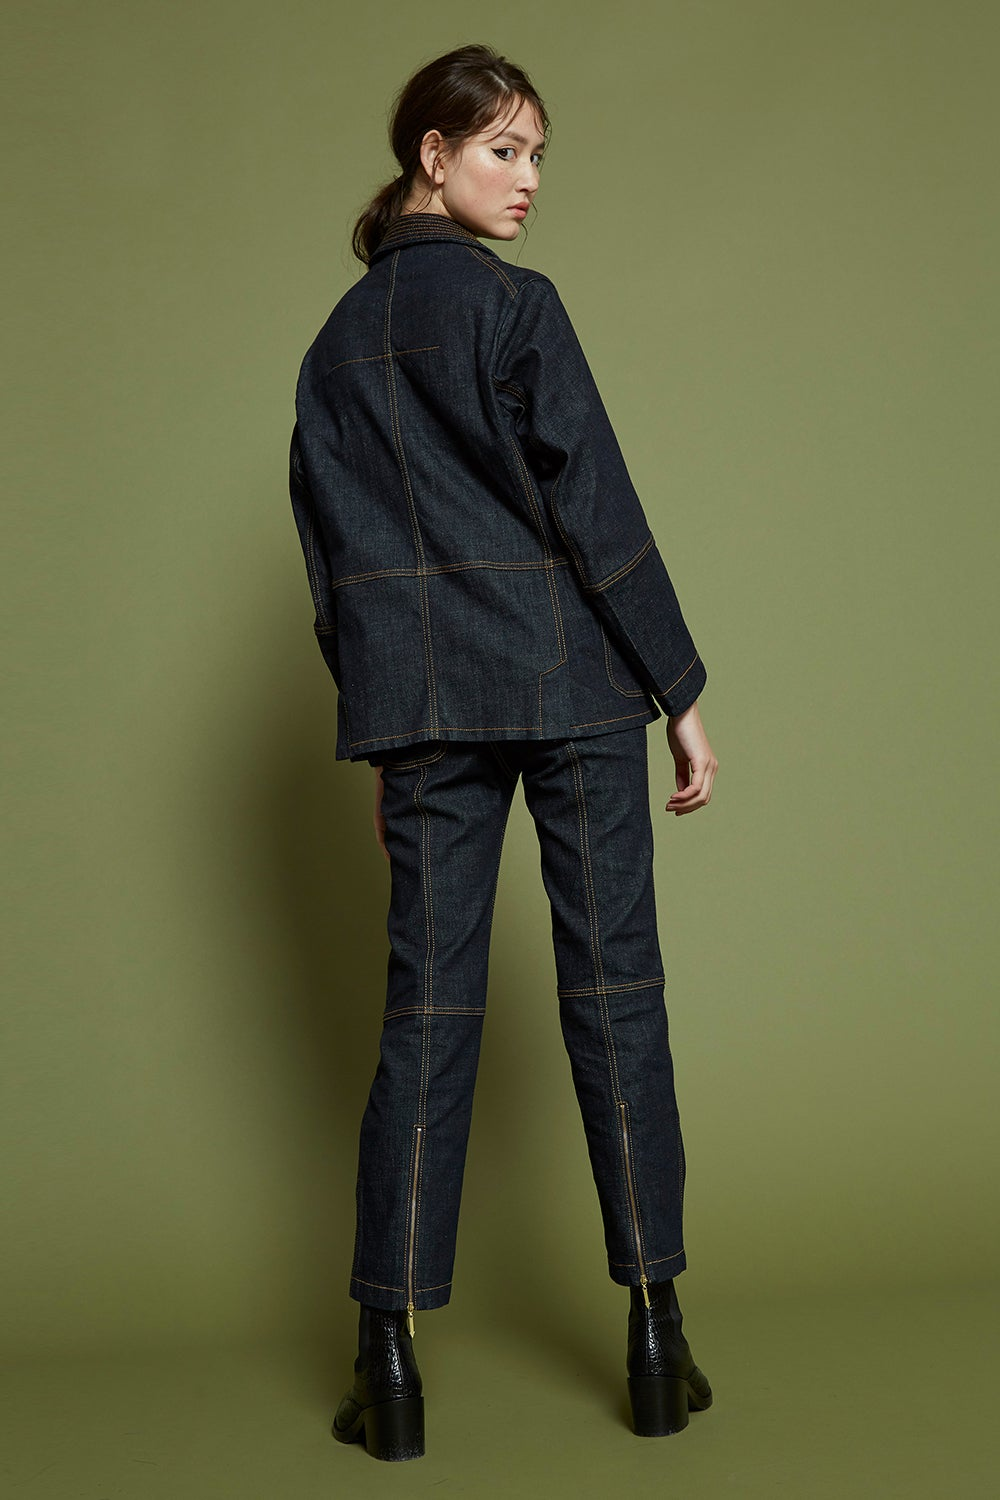 Outland Denim x Karen Walker Idle Jean